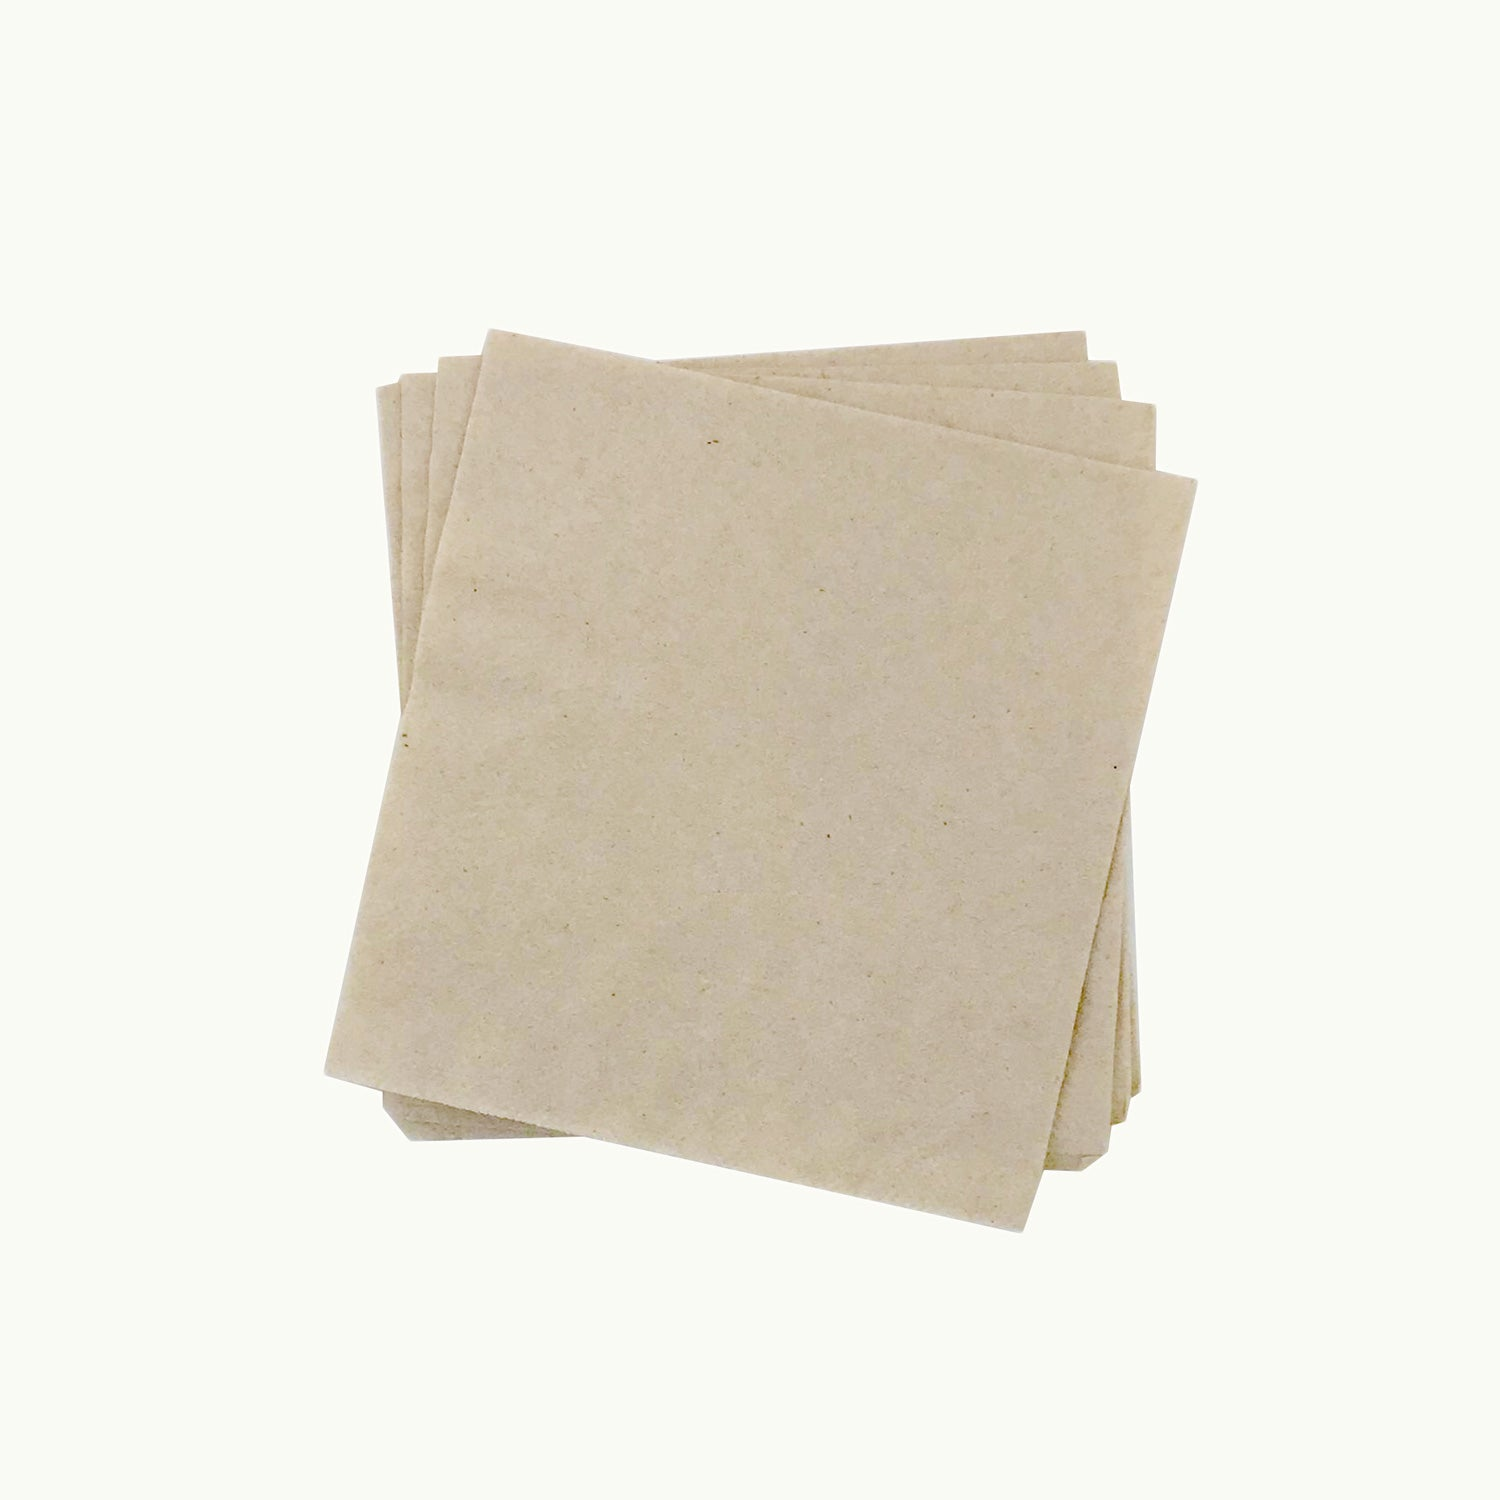 Eco Napkin - 4 Fold Cocktail - FSC RECYCLED